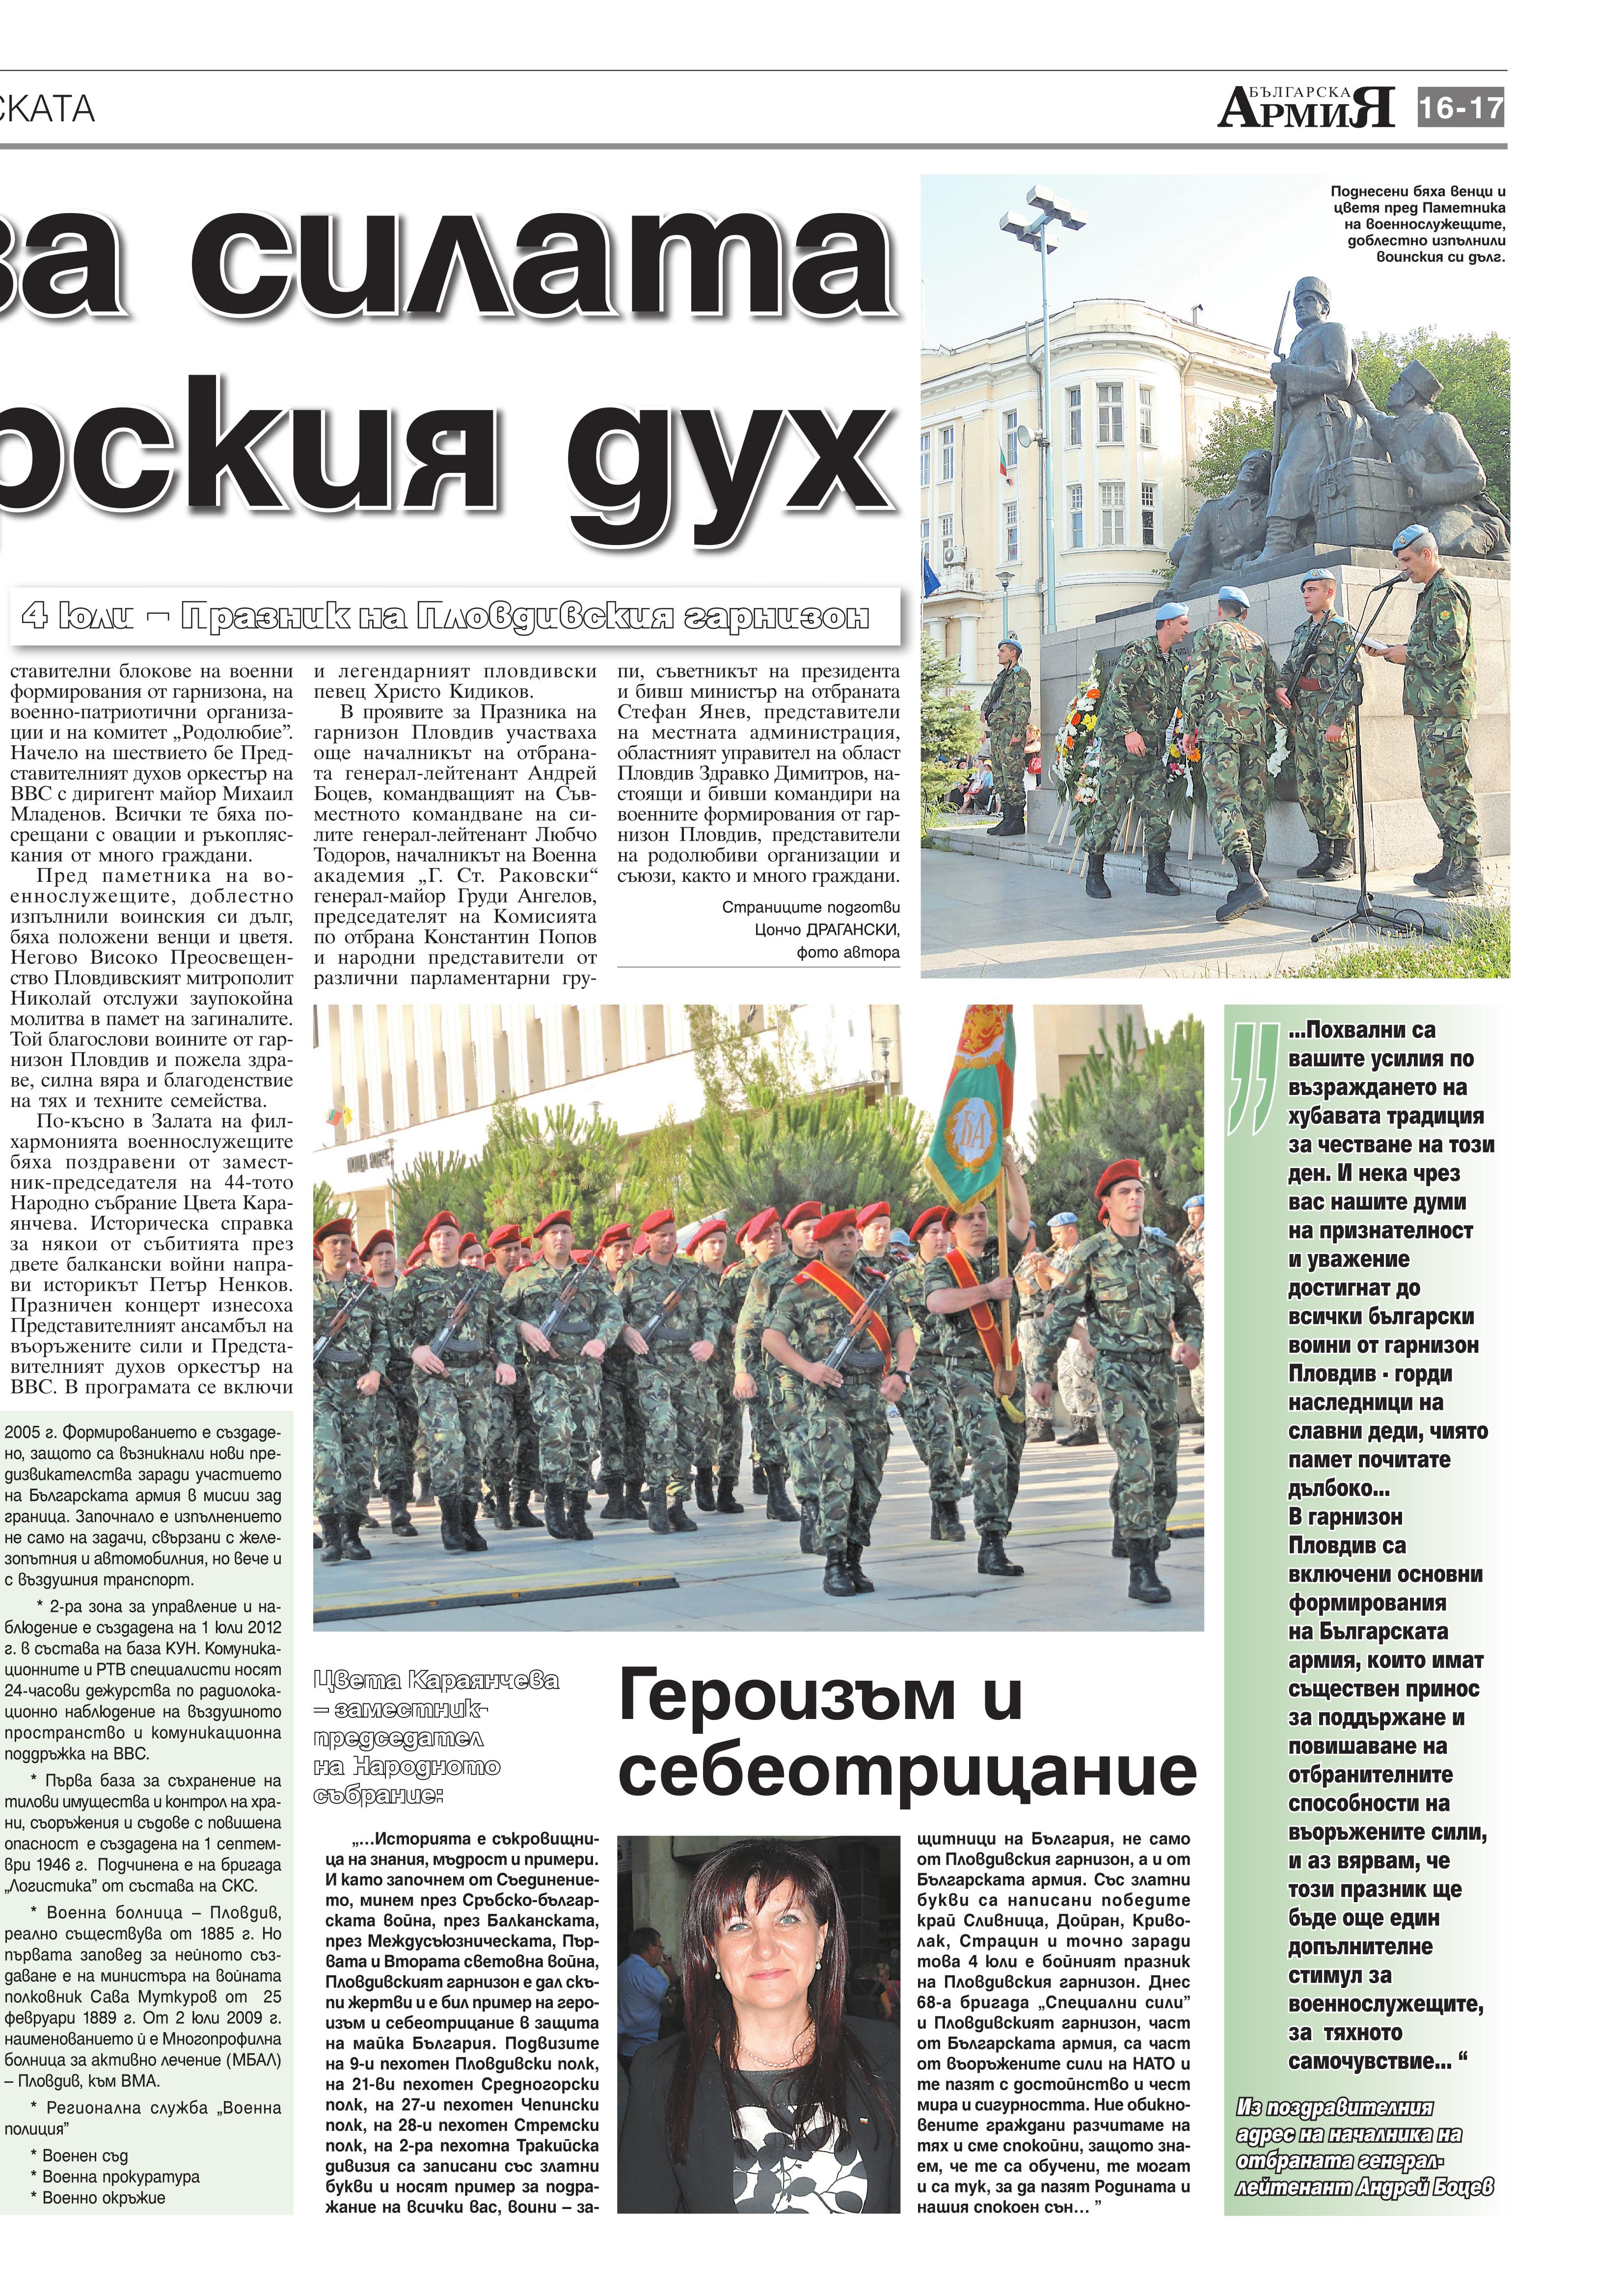 https://www.armymedia.bg/wp-content/uploads/2015/06/17.page1_-24.jpg